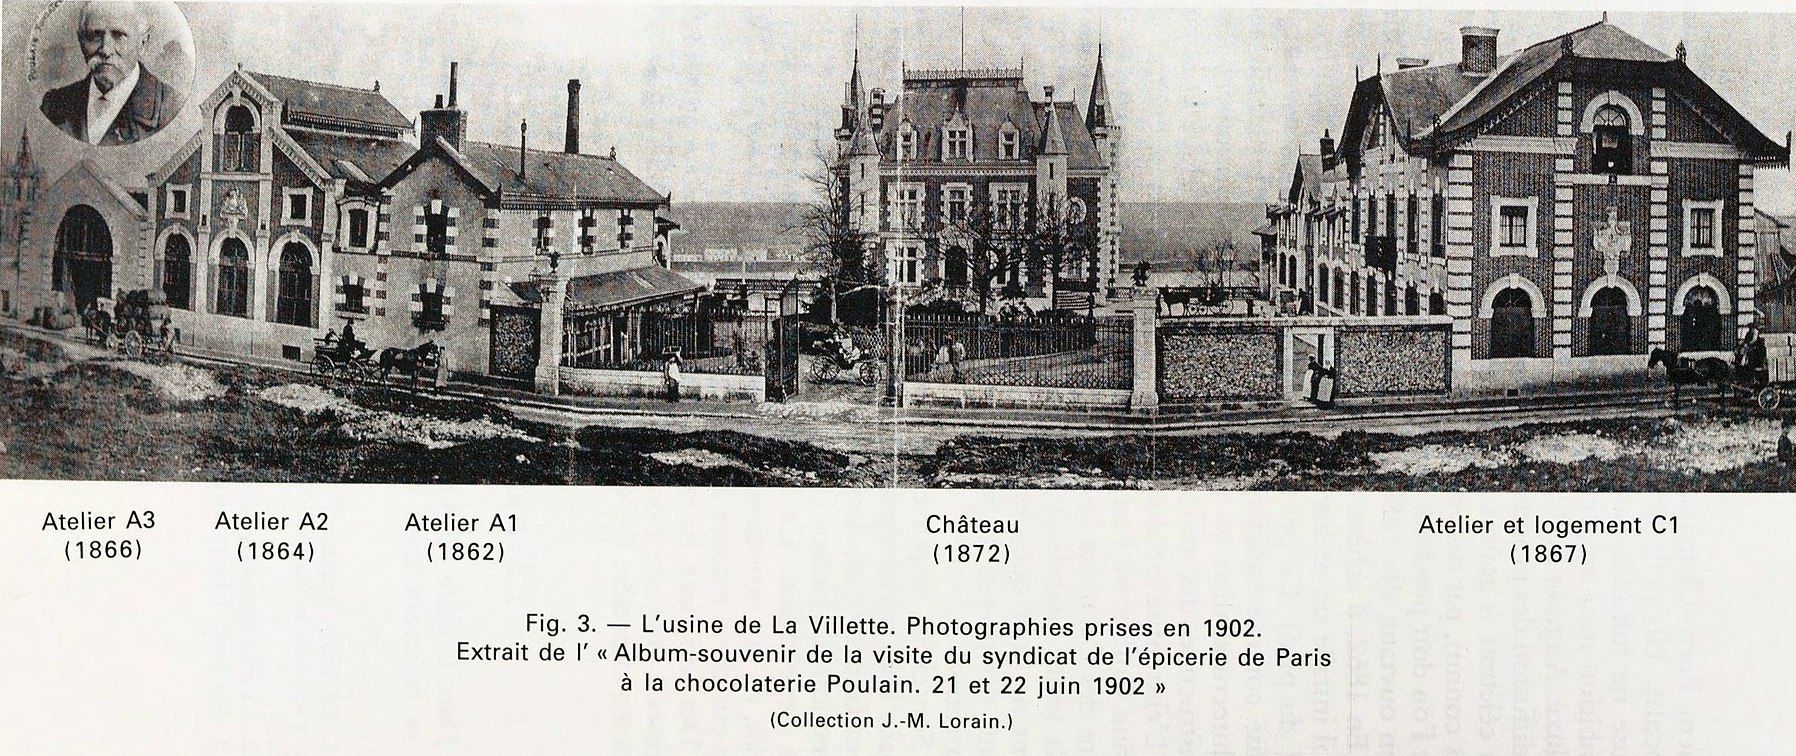 La chocolaterie poulain